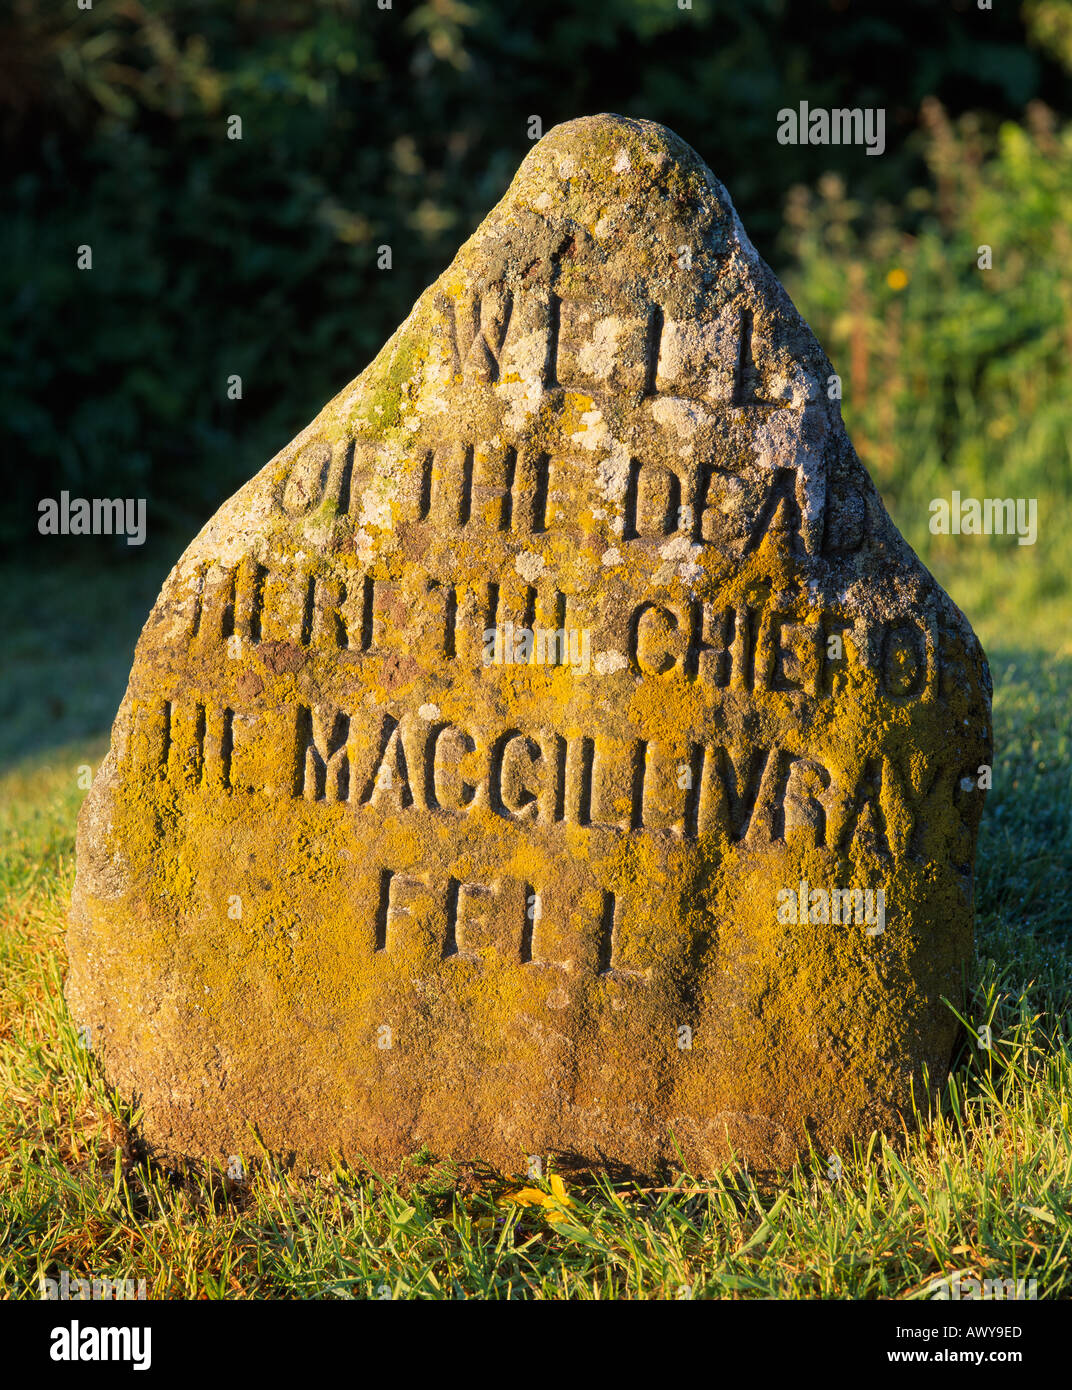 Battle of Culloden. Well of the Dead. Culloden Moor, near Inverness, Highland, Scotland, UK - Stock Image